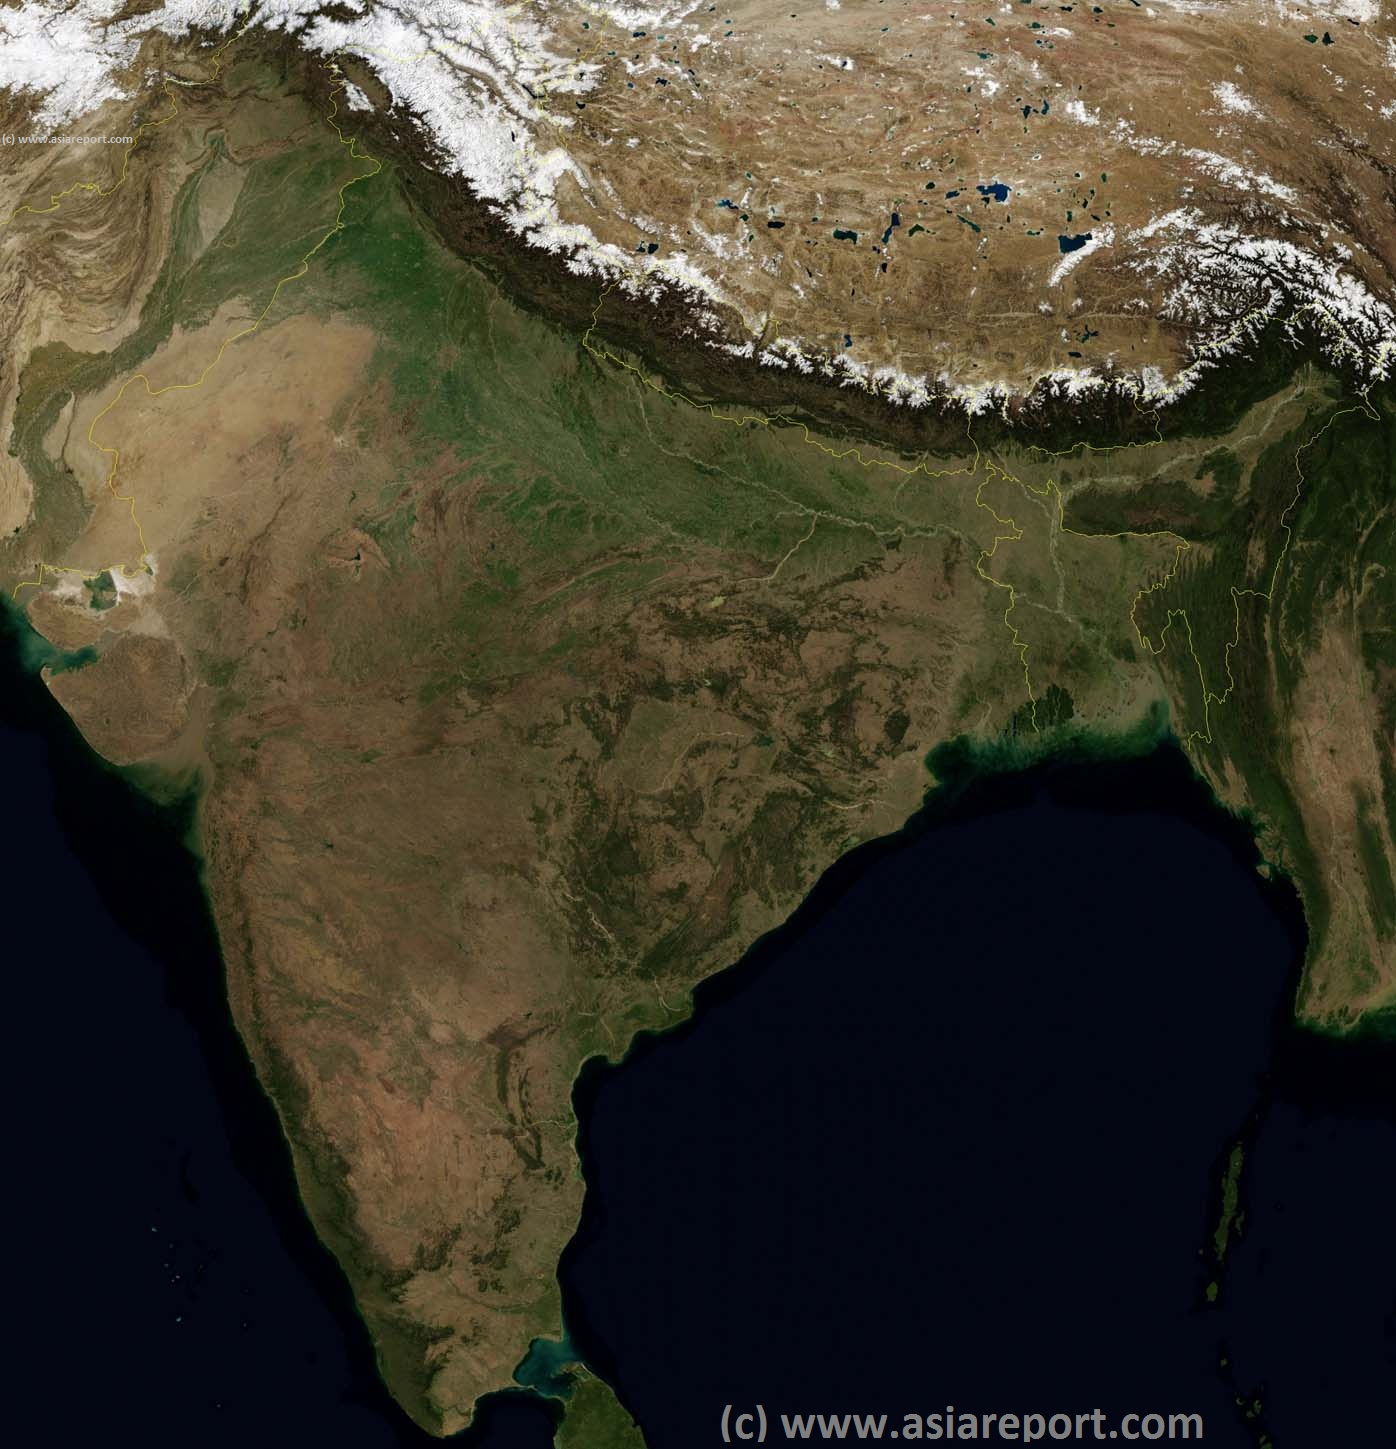 Map satellite india pakistan nepal bhutan tibet ar bangladesh 01a asia report india maps india pakistan tibet bangladesh satellite image based map overview 01a gumiabroncs Choice Image